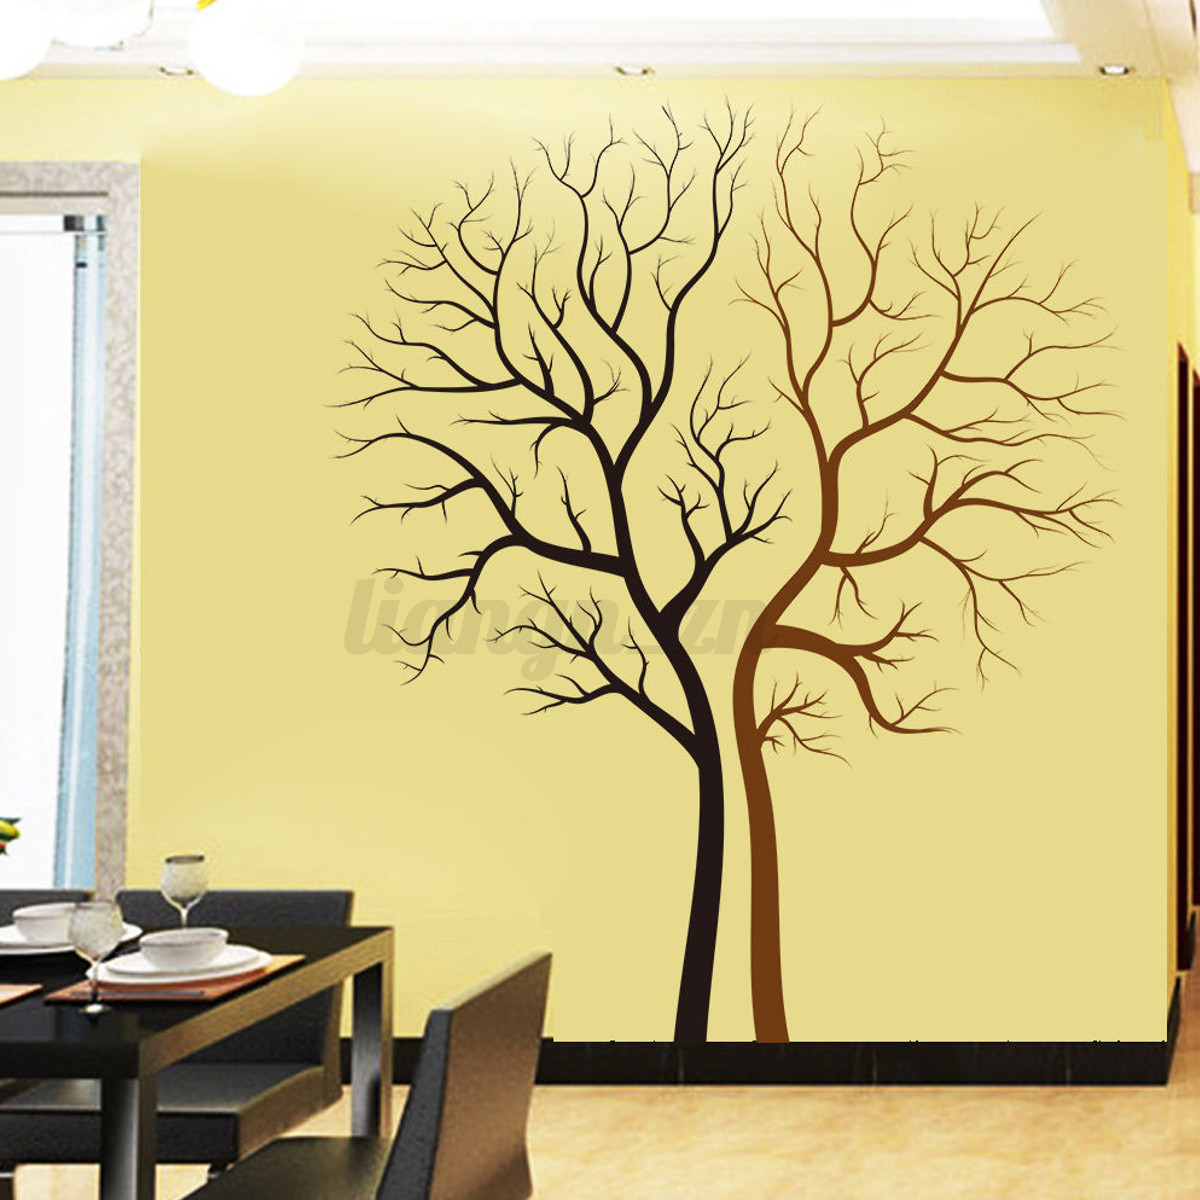 amovible 3d stickers autocollant arbre murale muraux d coration maison chambre ebay. Black Bedroom Furniture Sets. Home Design Ideas